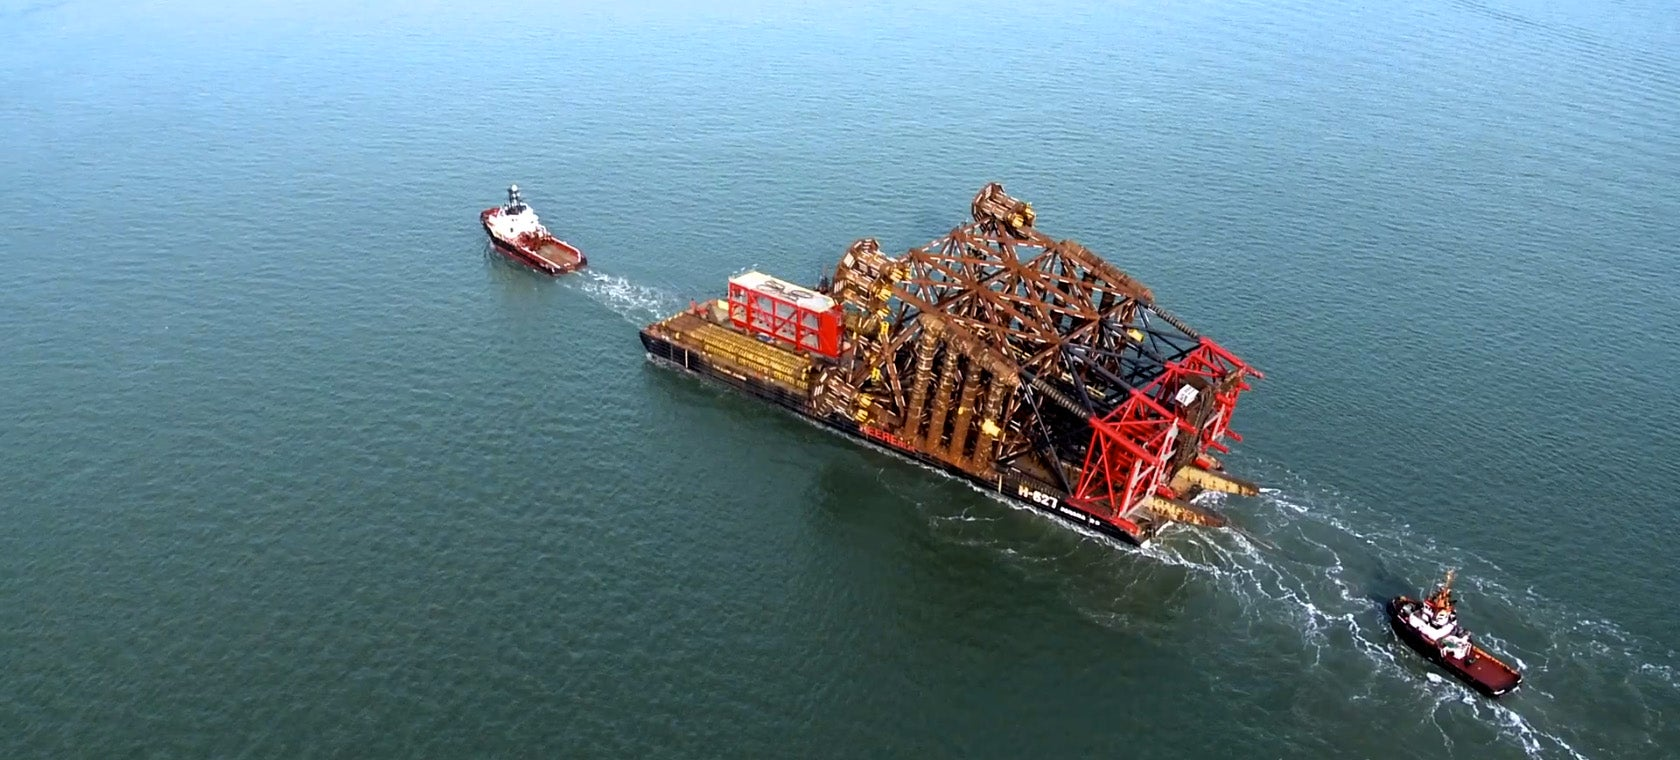 Watch this 9,259-ton oil platform launch in less than a minute